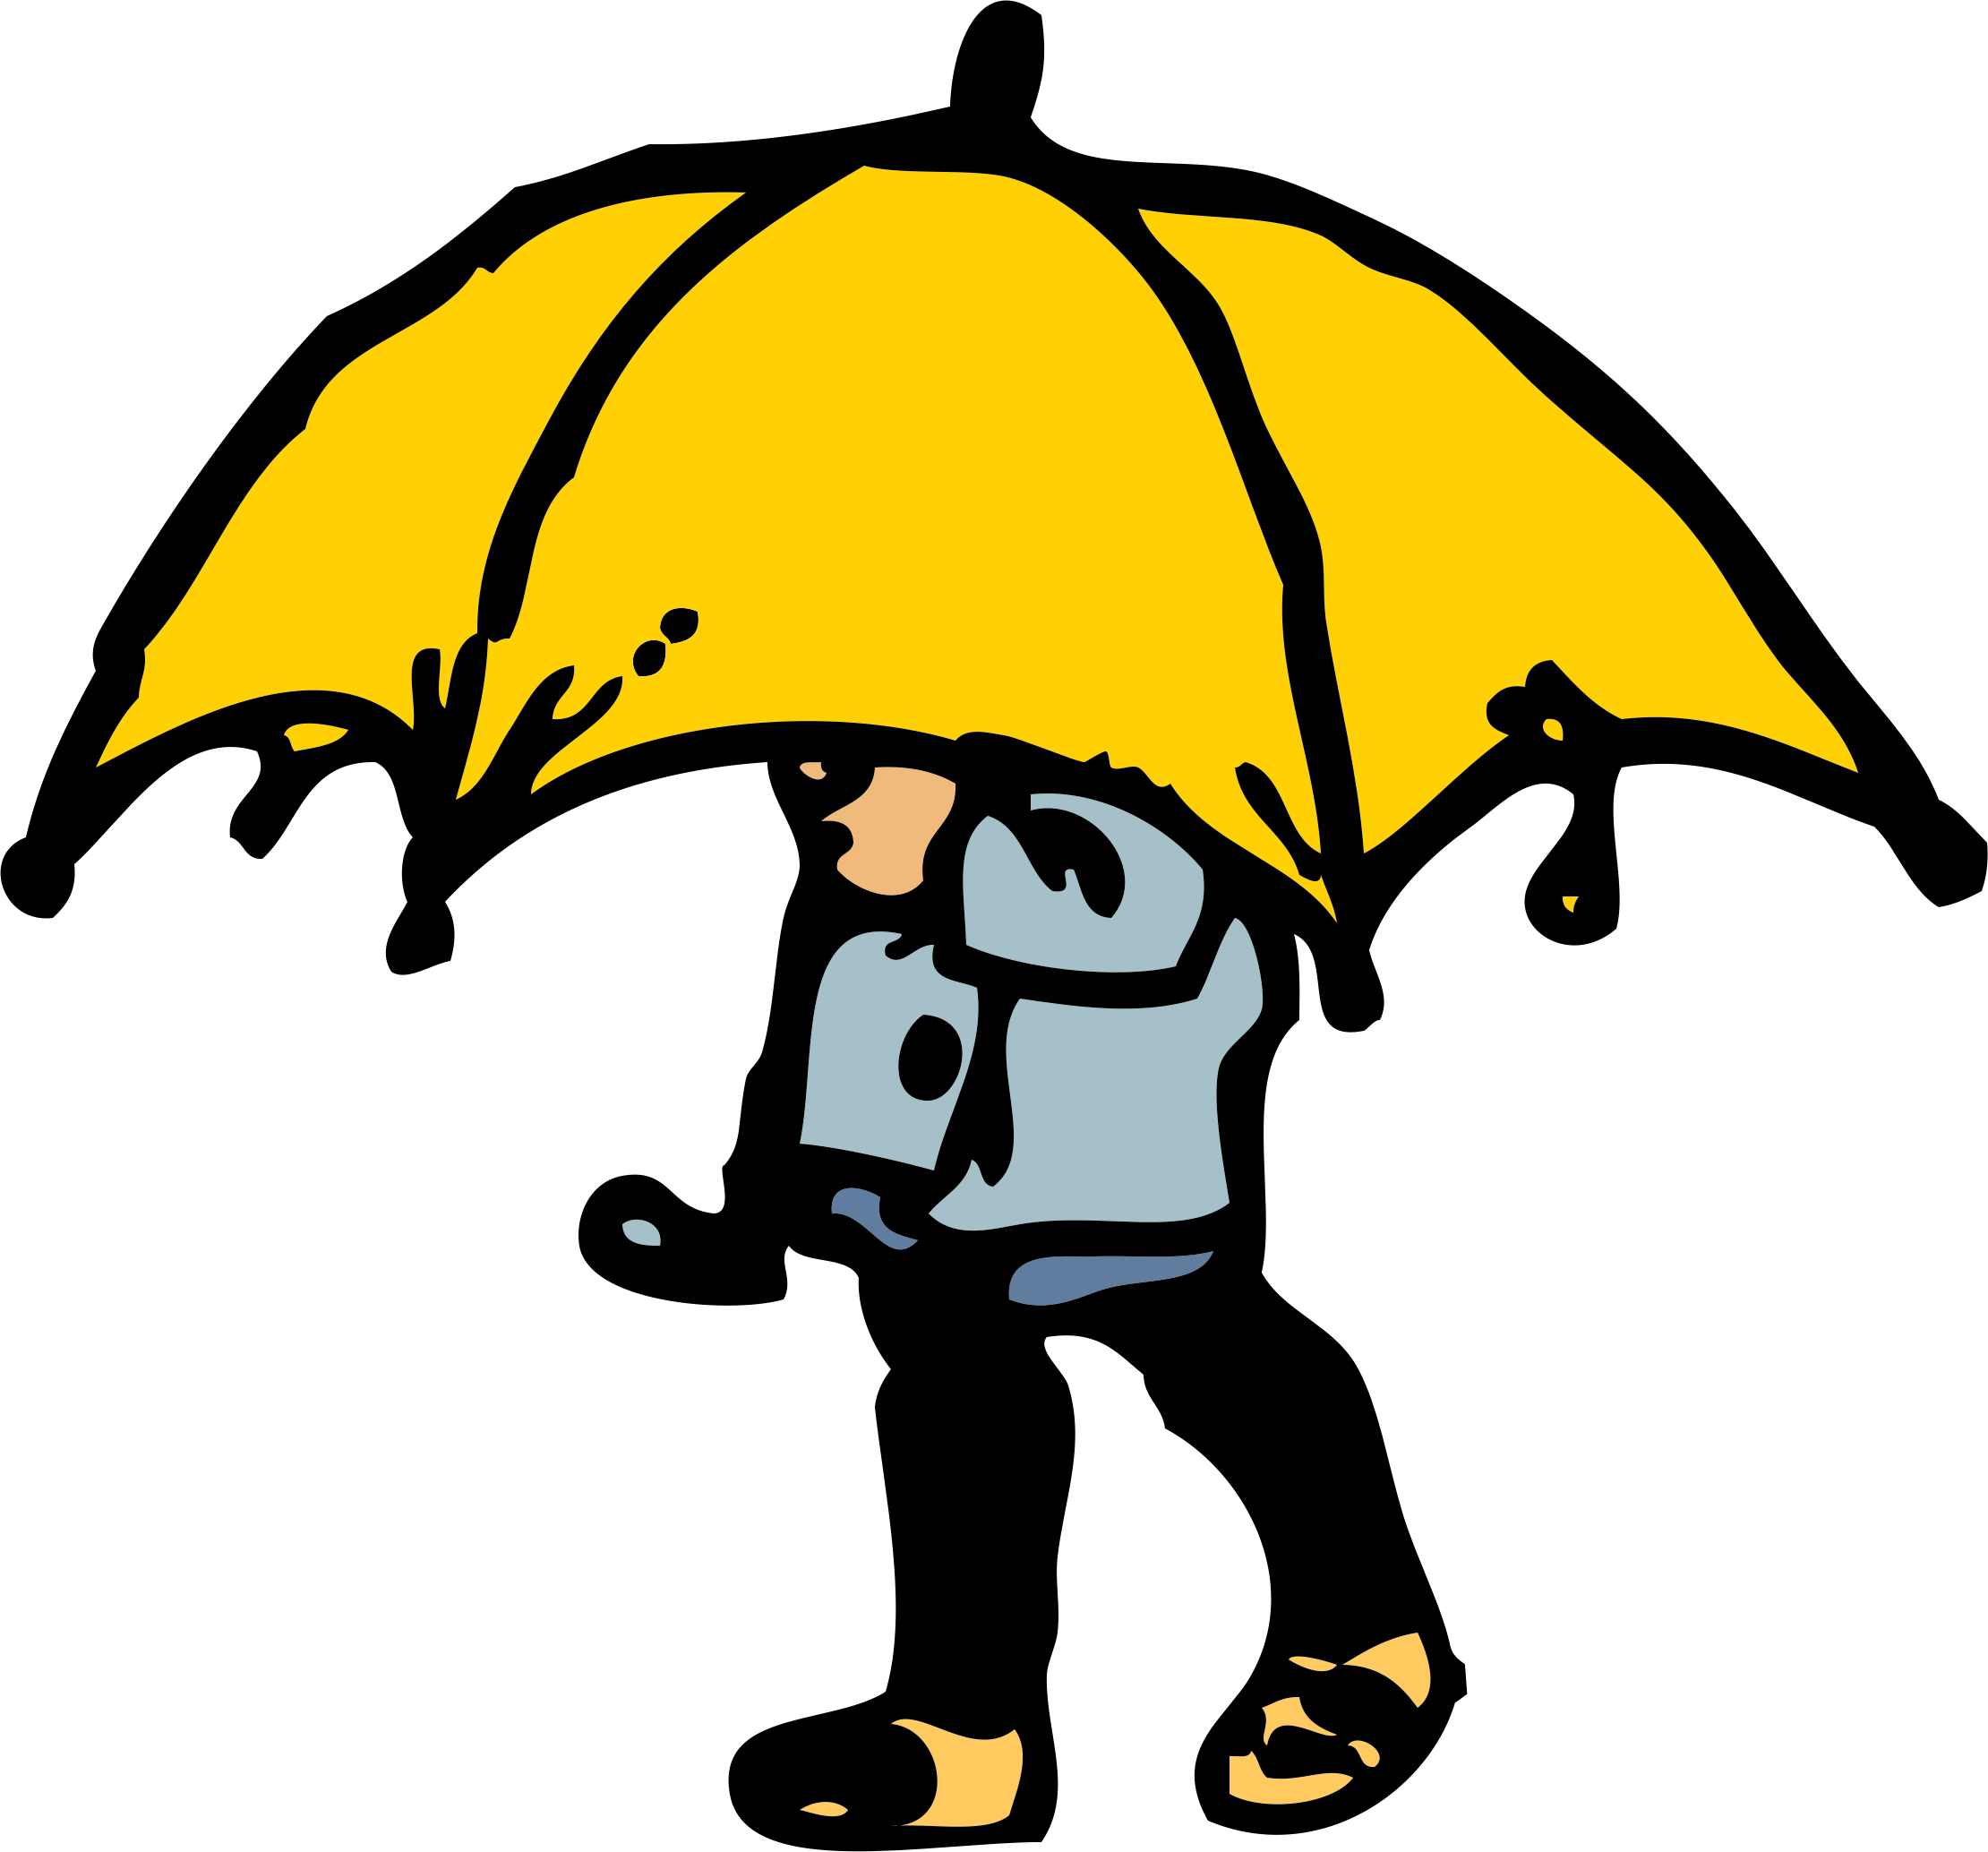 Tall clipart tall boy. With umbrella silhouette at